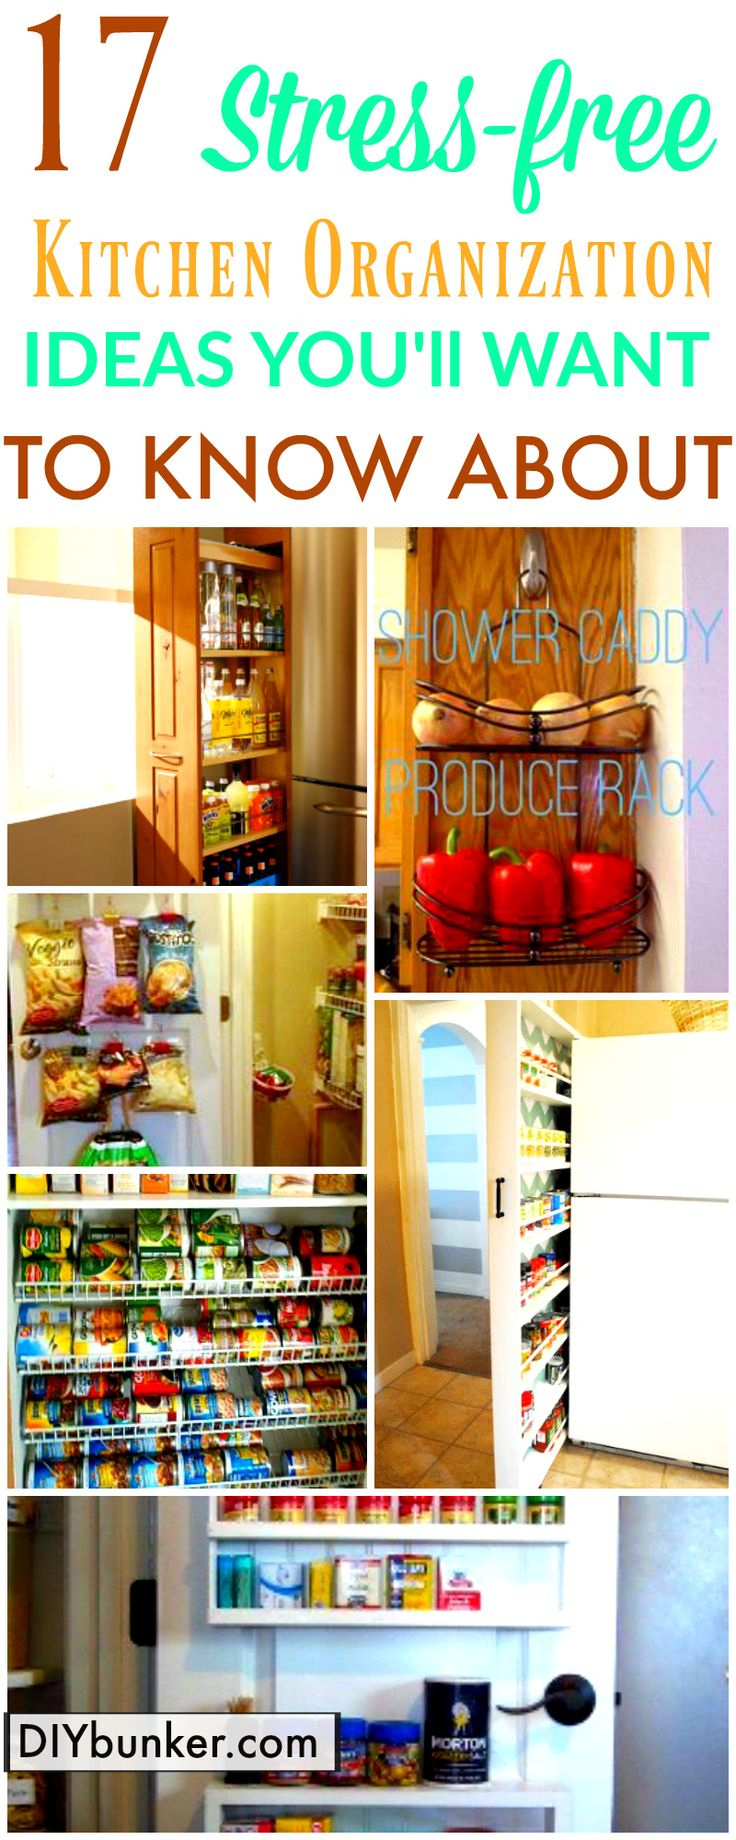 These 17 organization tips are SO USEFUL! I never thought to organize my kitchen cabinets this way. I love how easy and cheap it is to make your cabinets look so good!